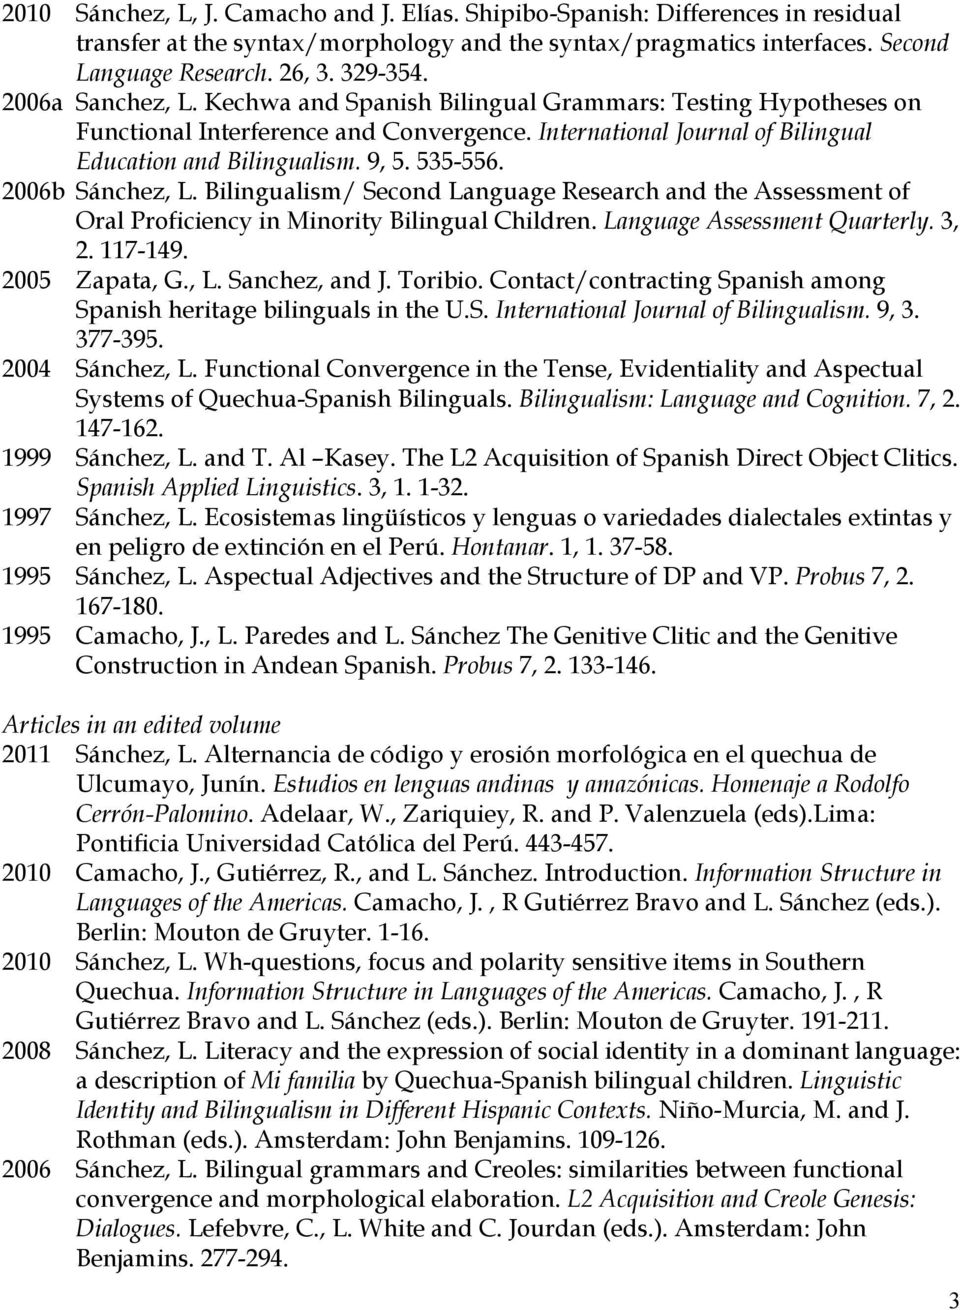 2006b Sánchez, L. Bilingualism/ Second Language Research and the Assessment of Oral Proficiency in Minority Bilingual Children. Language Assessment Quarterly. 3, 2. 117-149. 2005 Zapata, G., L. Sanchez, and J.